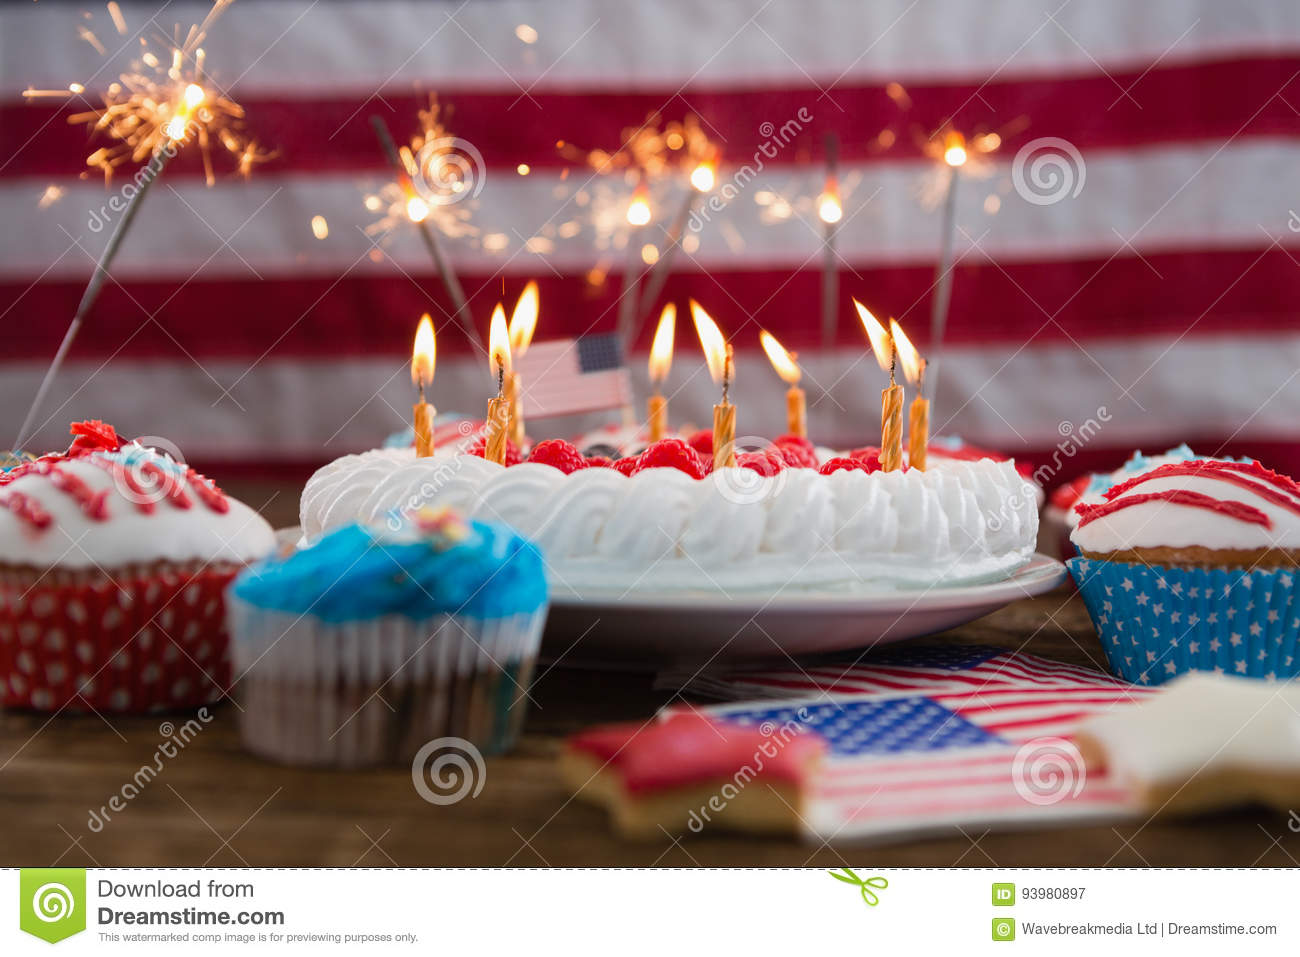 Outstanding Patriotic 4Th Of July Cake And Cupcake Stock Image Image Of Funny Birthday Cards Online Fluifree Goldxyz